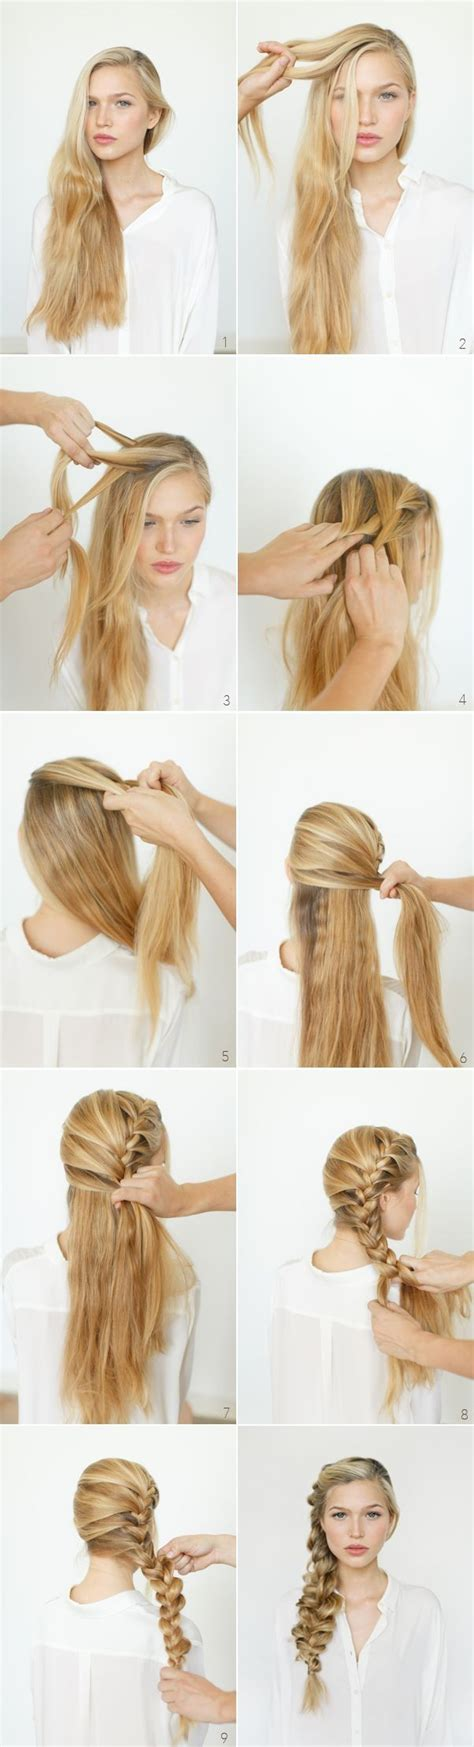 Hairstyles Step By Step For by Step By Step Hairstyles For Hair Hairstyles